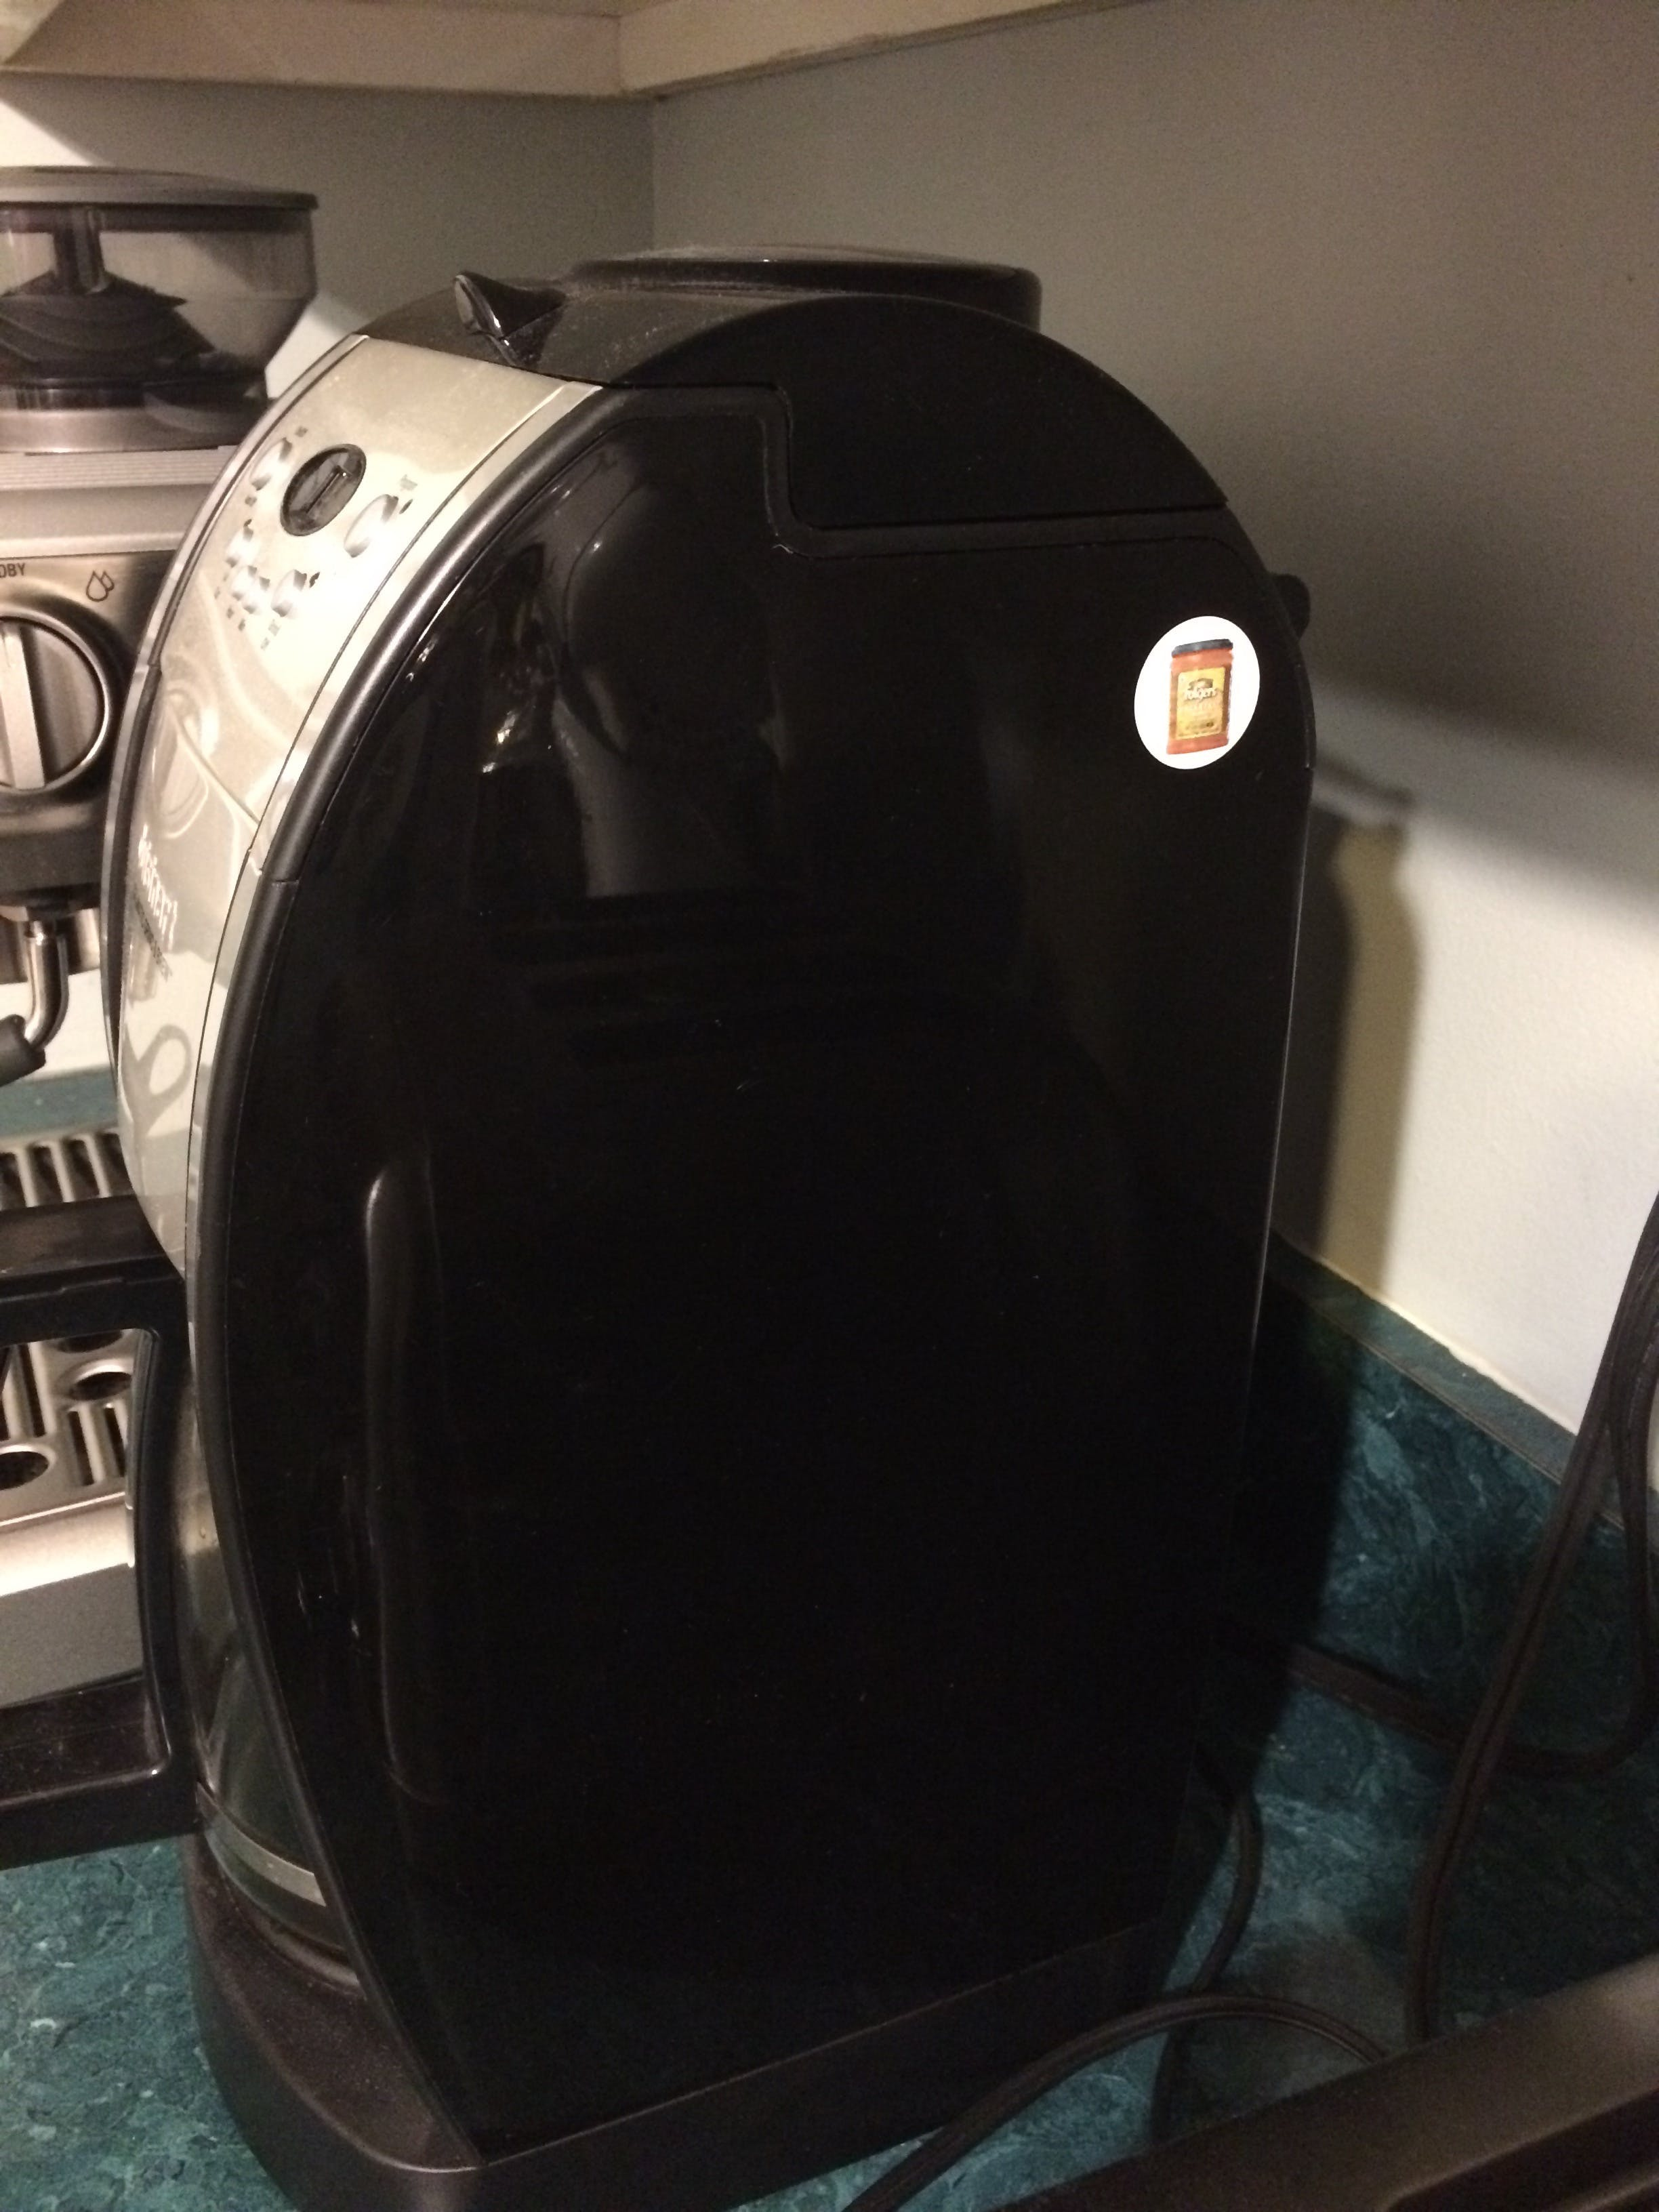 Coffee Maker w/ 'Replenisher' RFID Tag